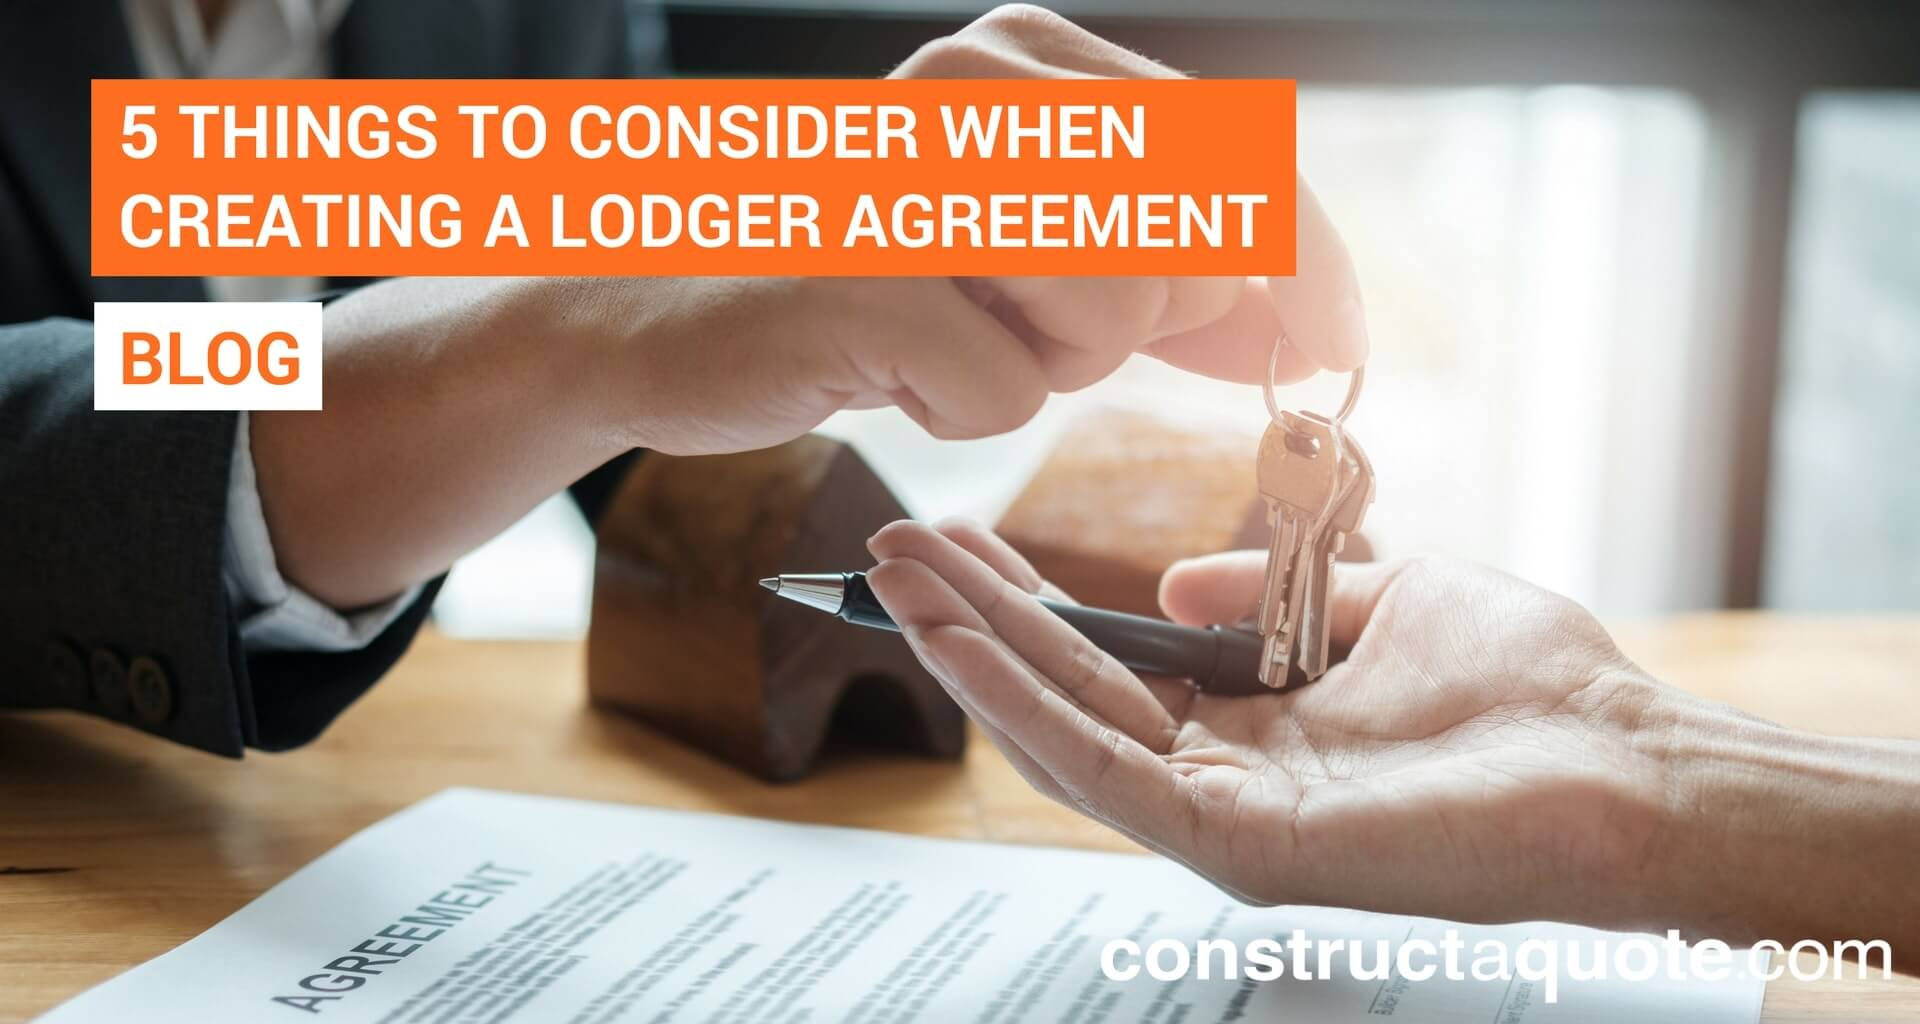 Live-in landlords: 5 key things to consider when creating a lodger agreement